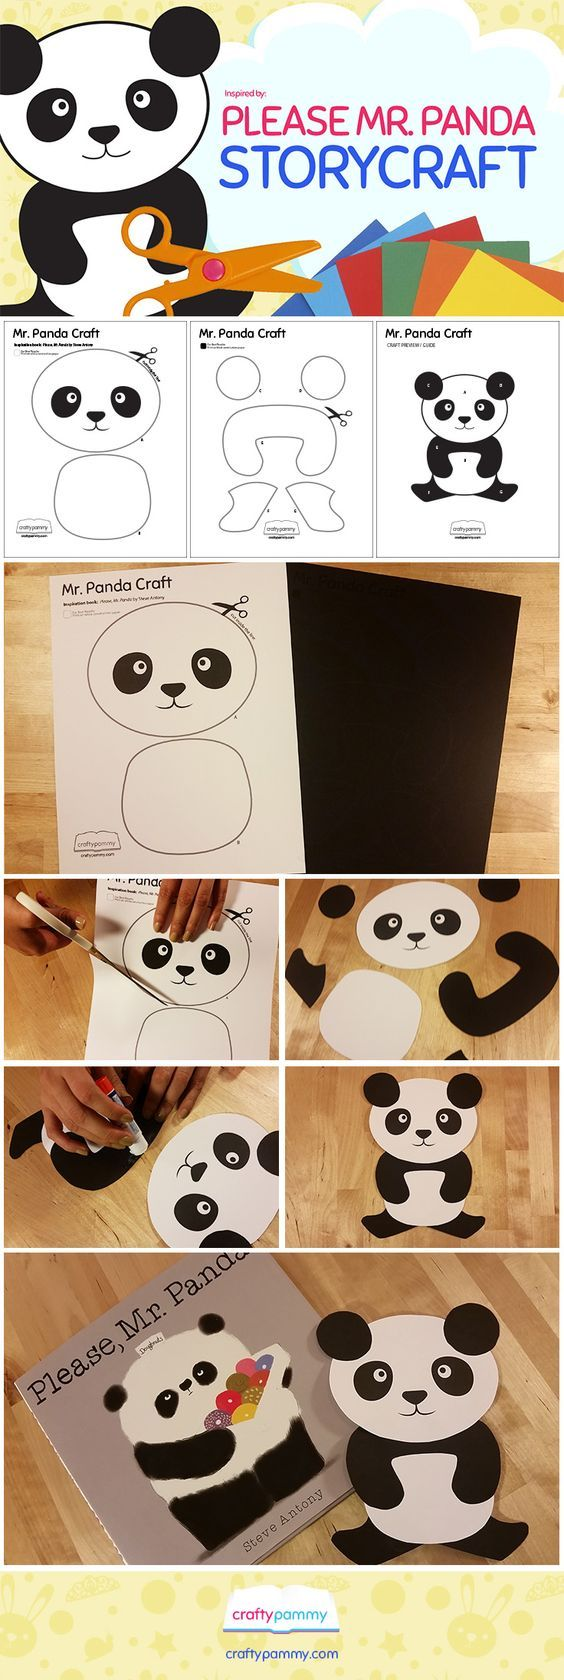 Gmail panda theme - Create A Panda Craft Using A Free Craft Template Available At Http Craftypammy